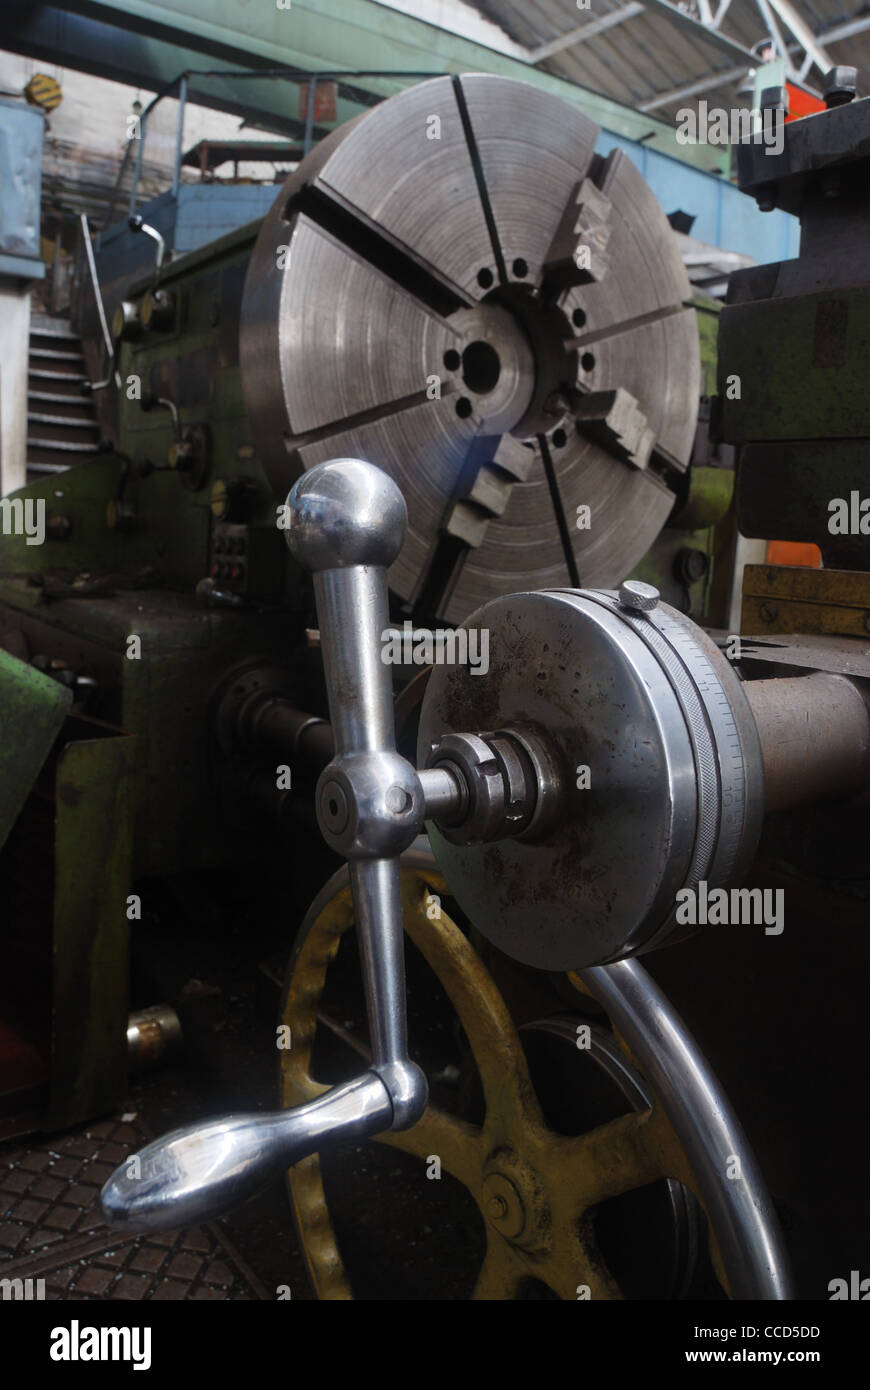 vertical photo of old lathe in the factory - Stock Image